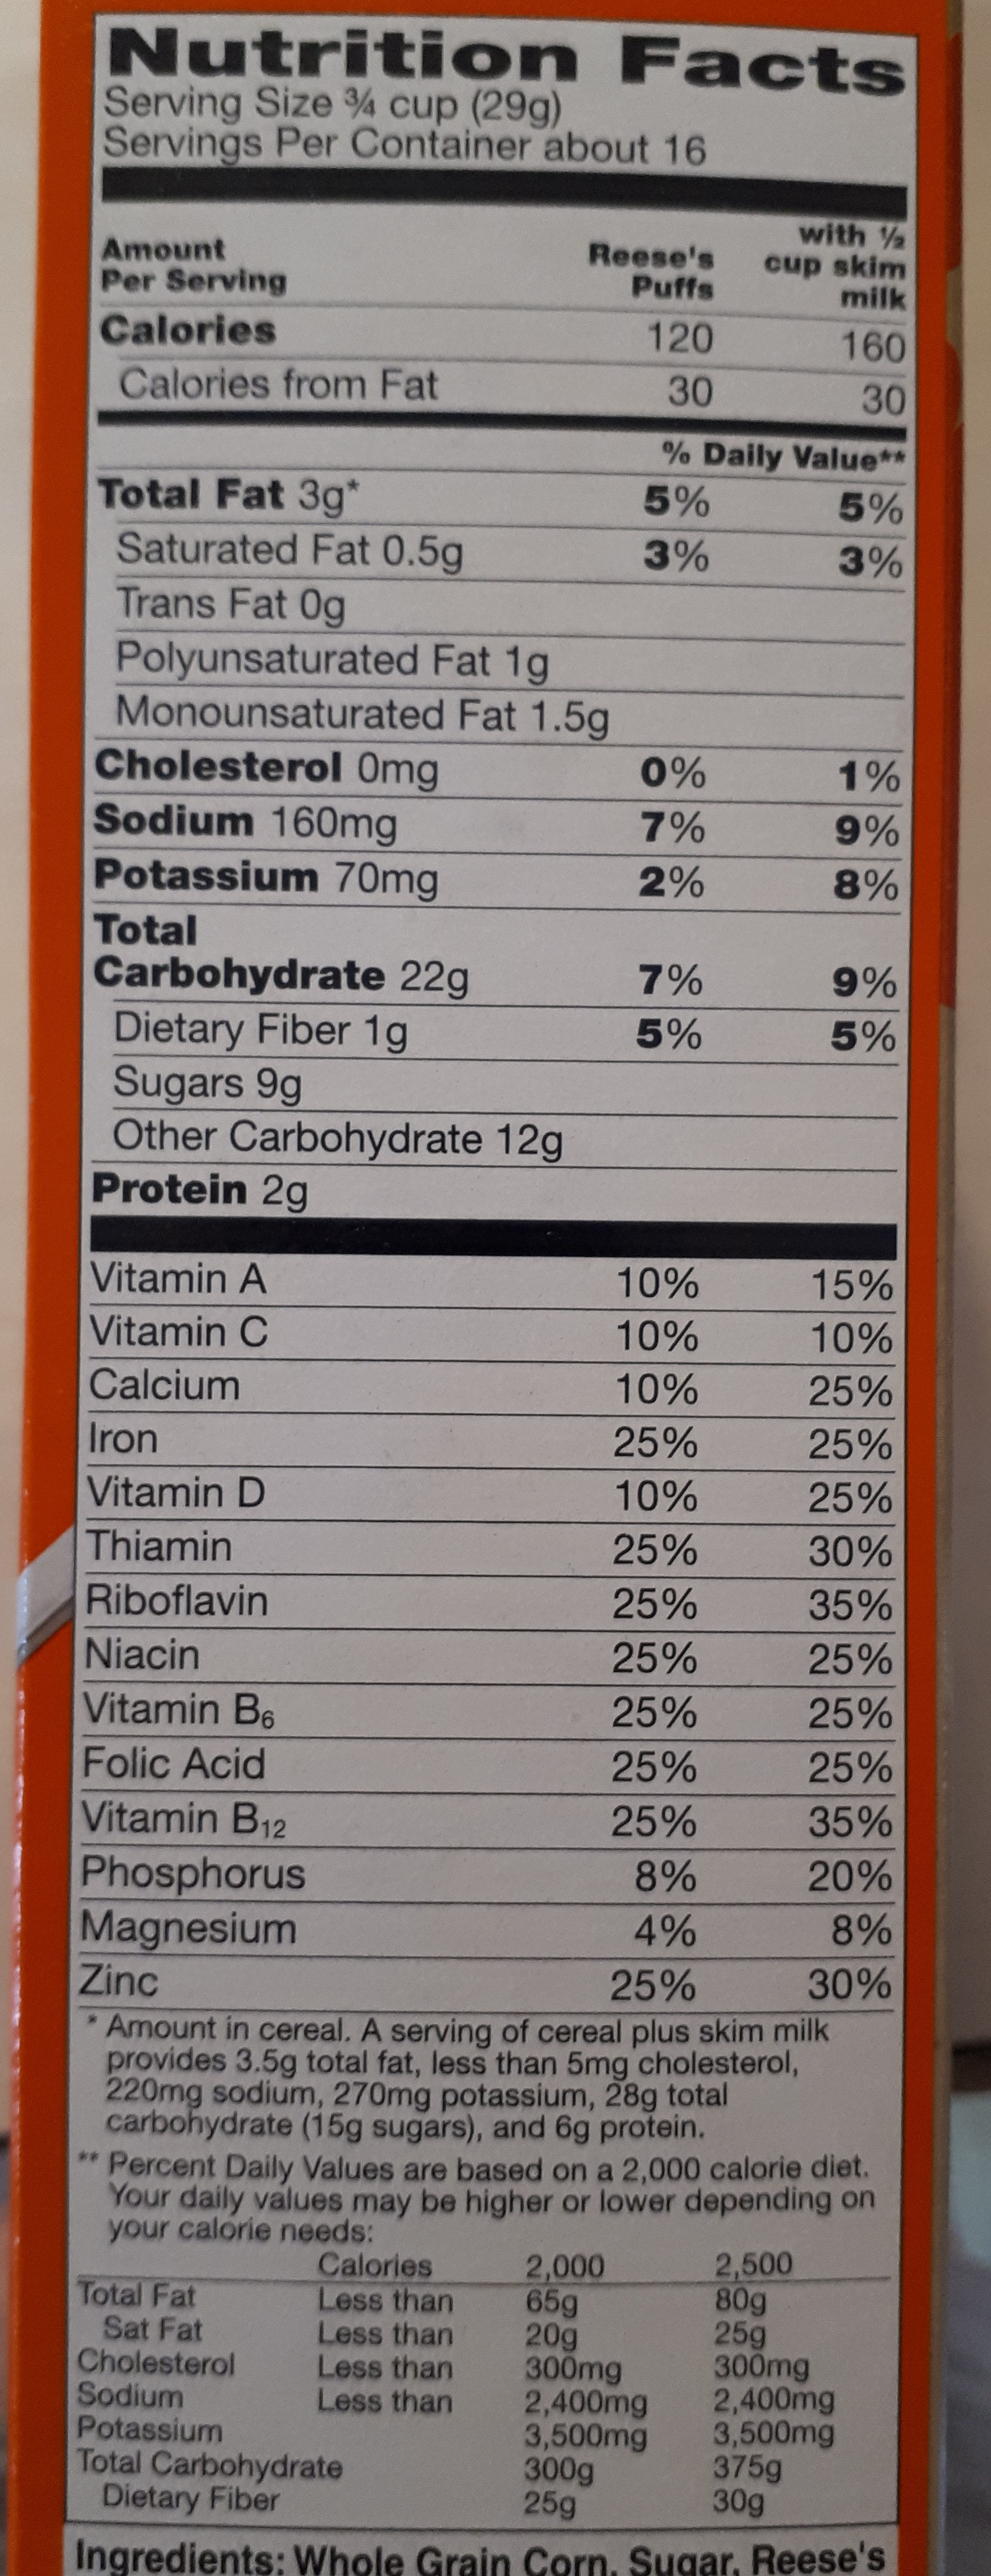 Reese's puffs - Nutrition facts